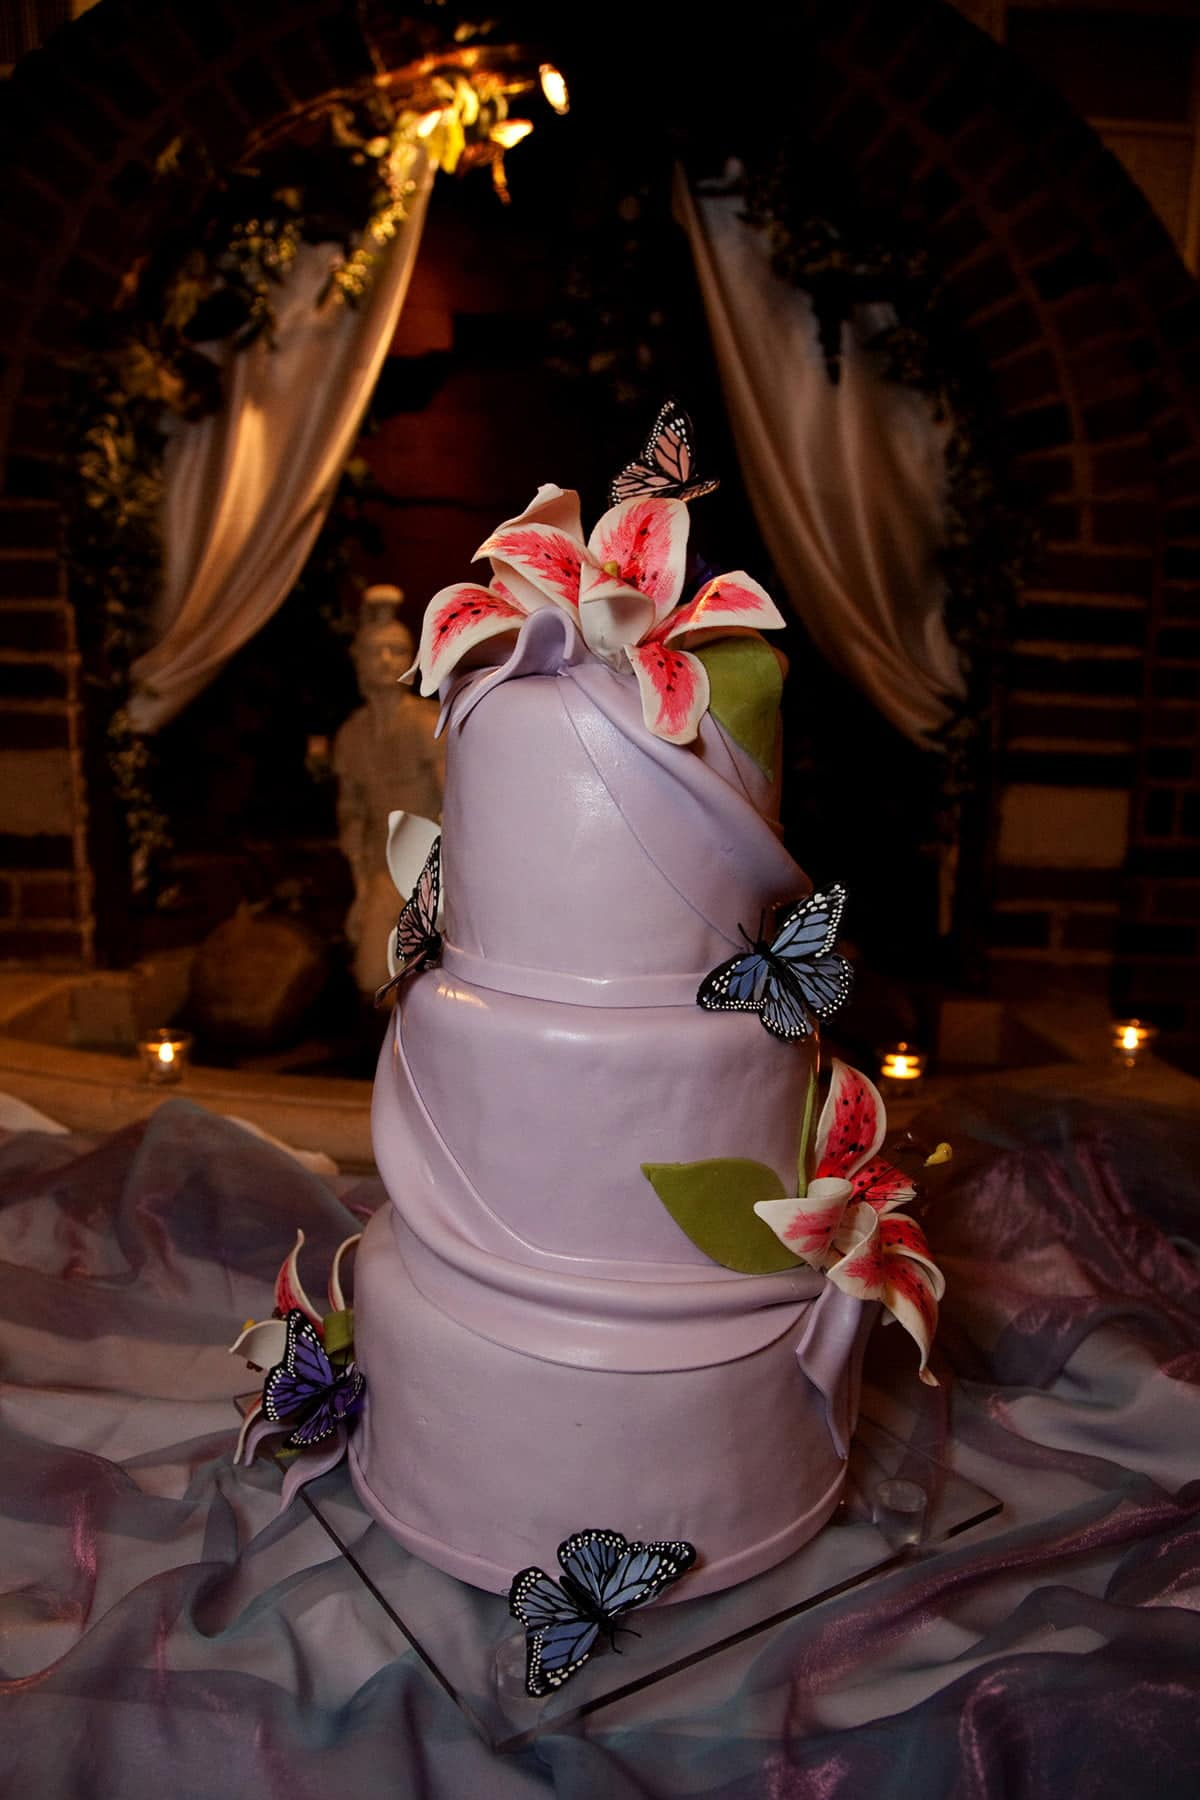 A 3 tiered purple wedding cake. The cake is covered in lavender fondant, and features swags of matching fondant and sugar Stargazer Lilies.